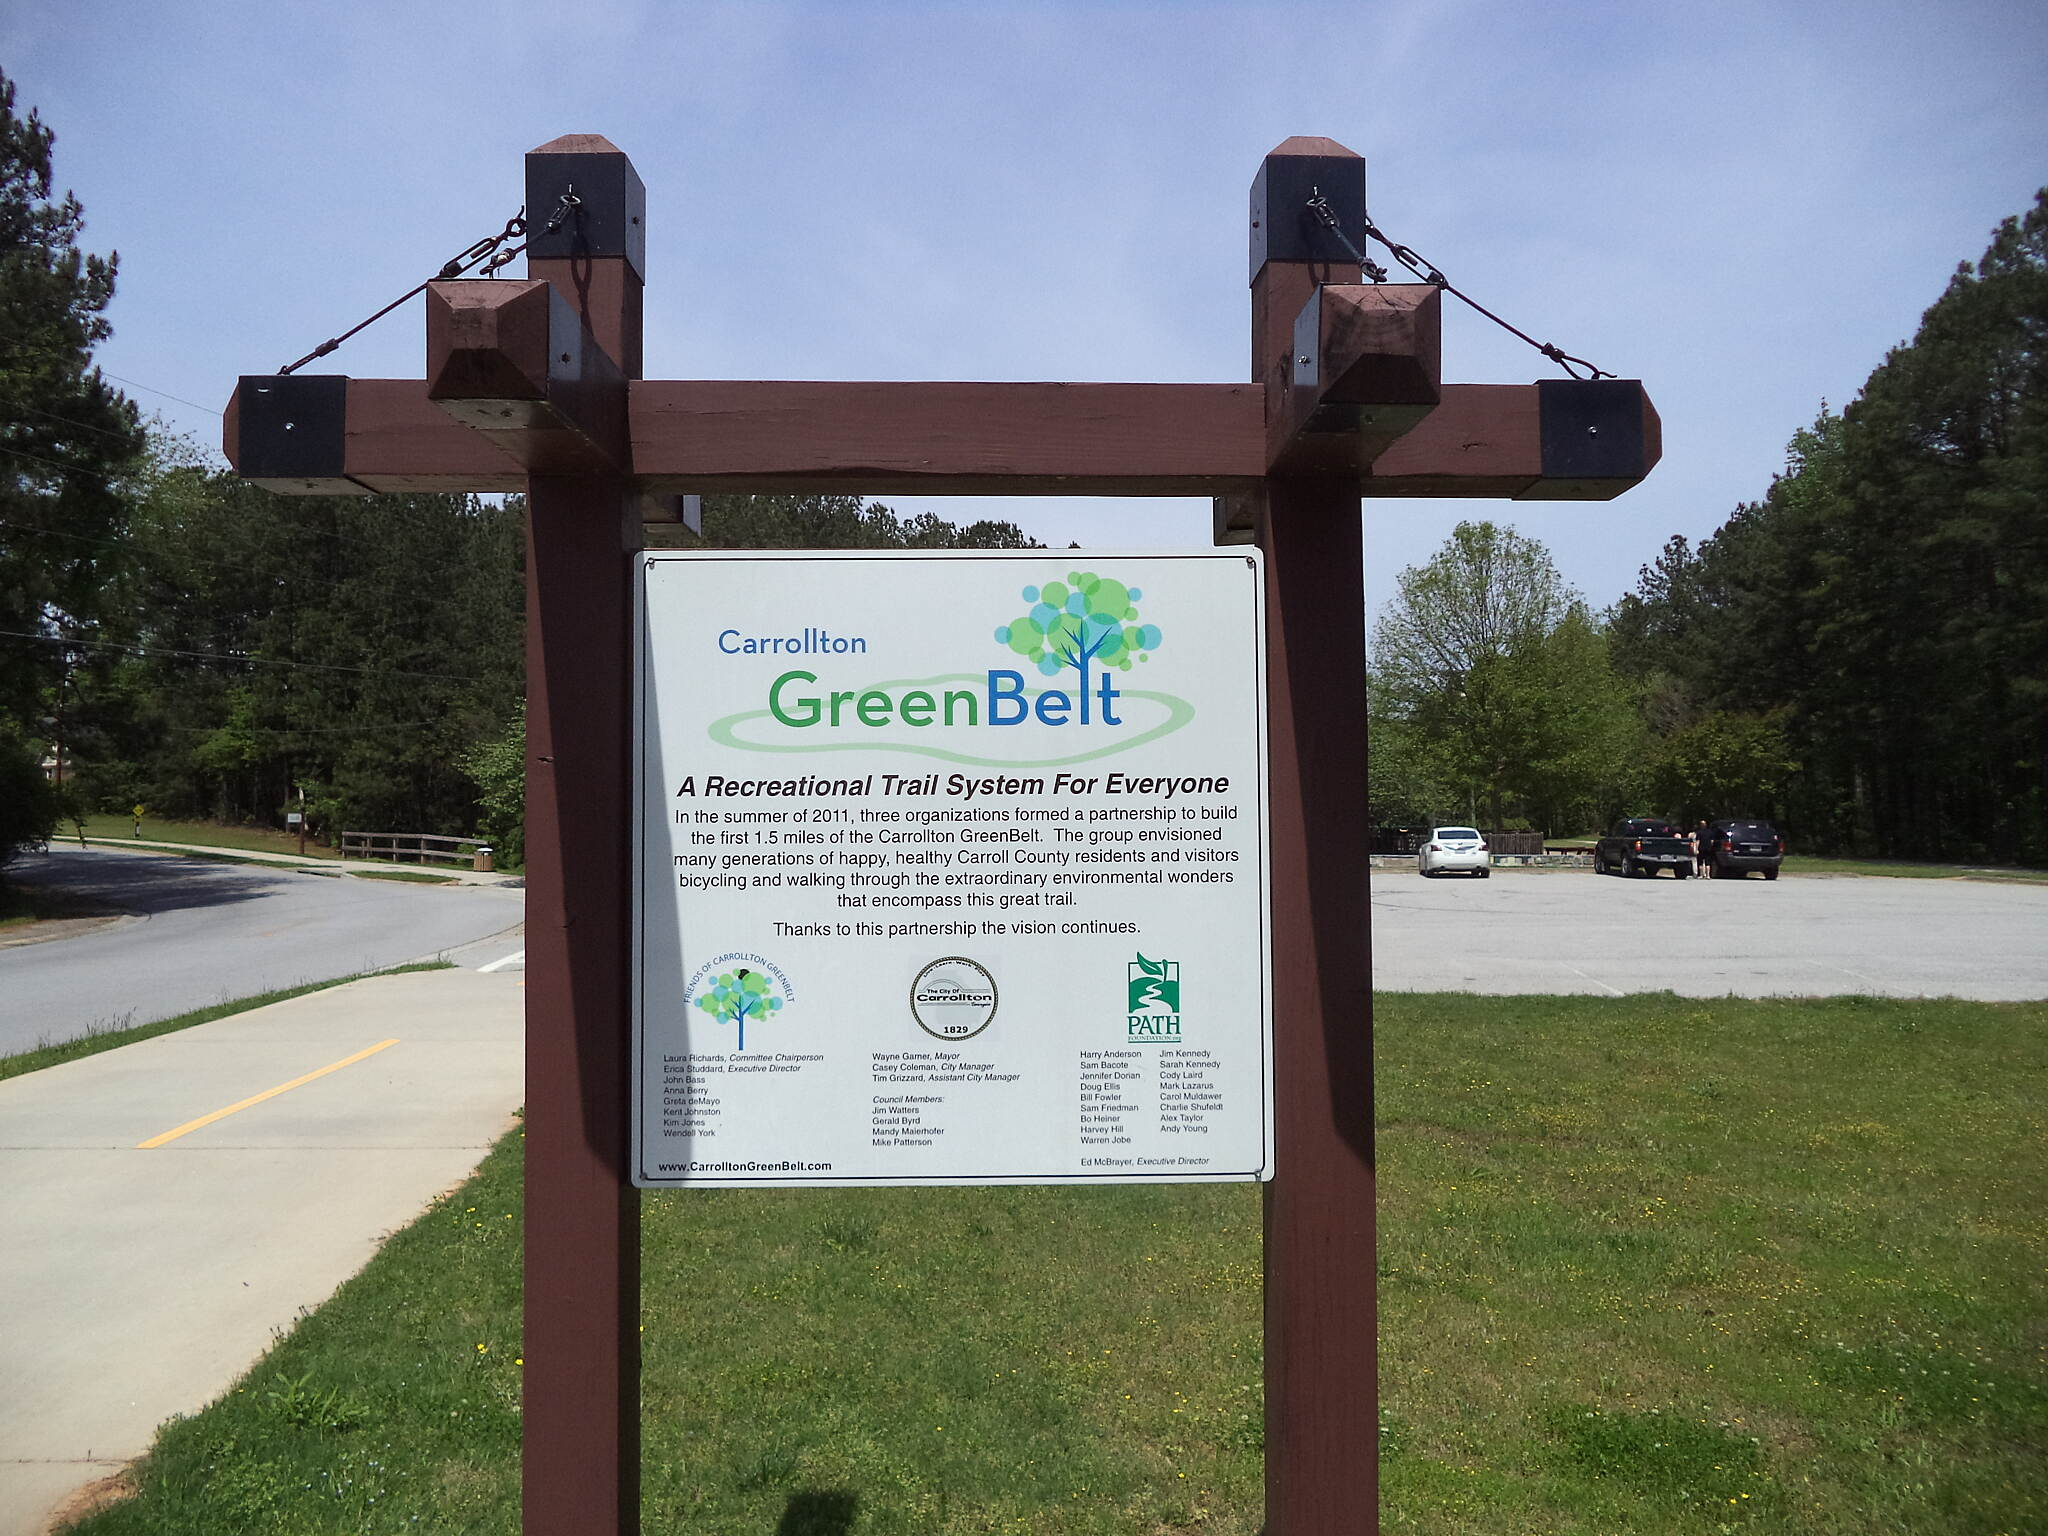 Carrollton GreenBelt Beltway A sign in East Carrollton Park.